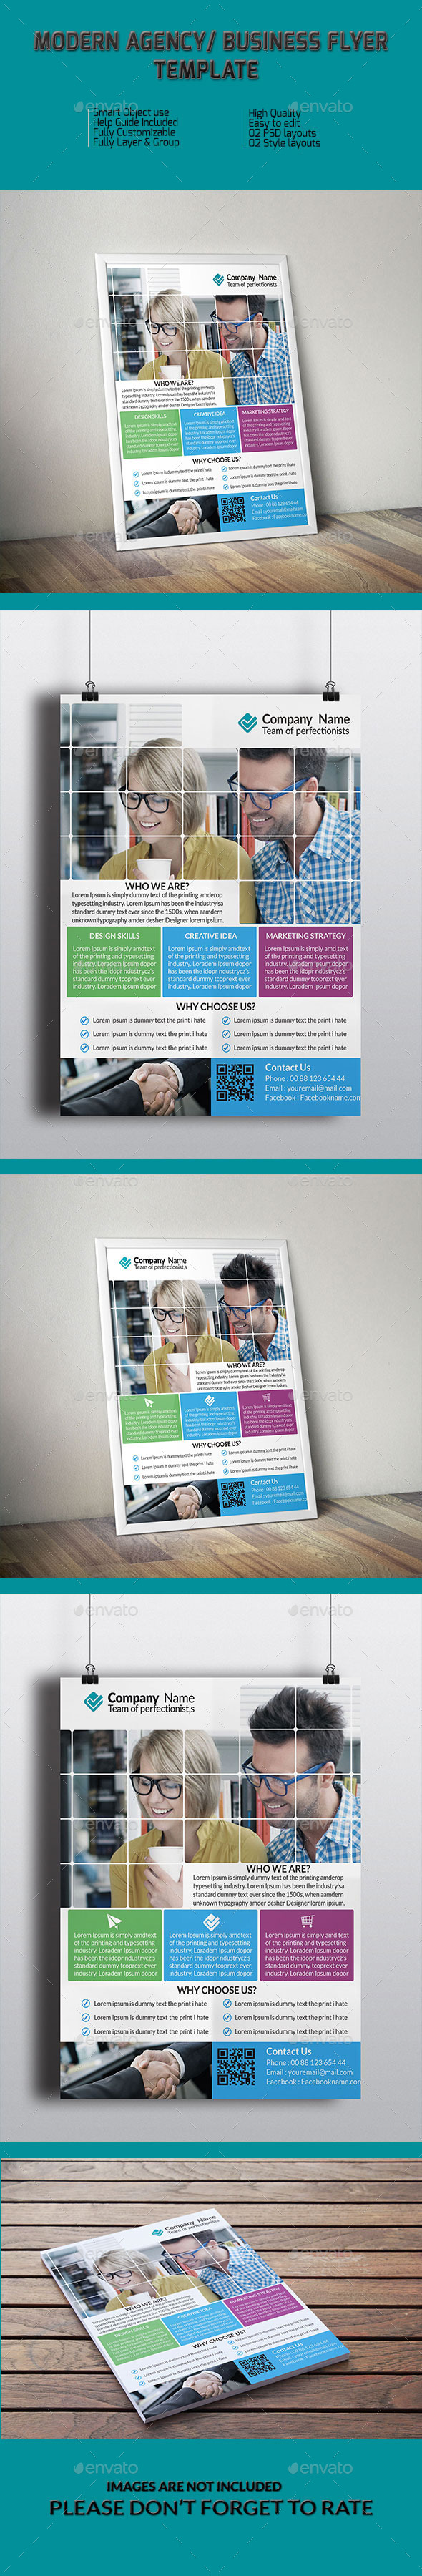 GraphicRiver Modern Agency Business Flyer Template 9323670